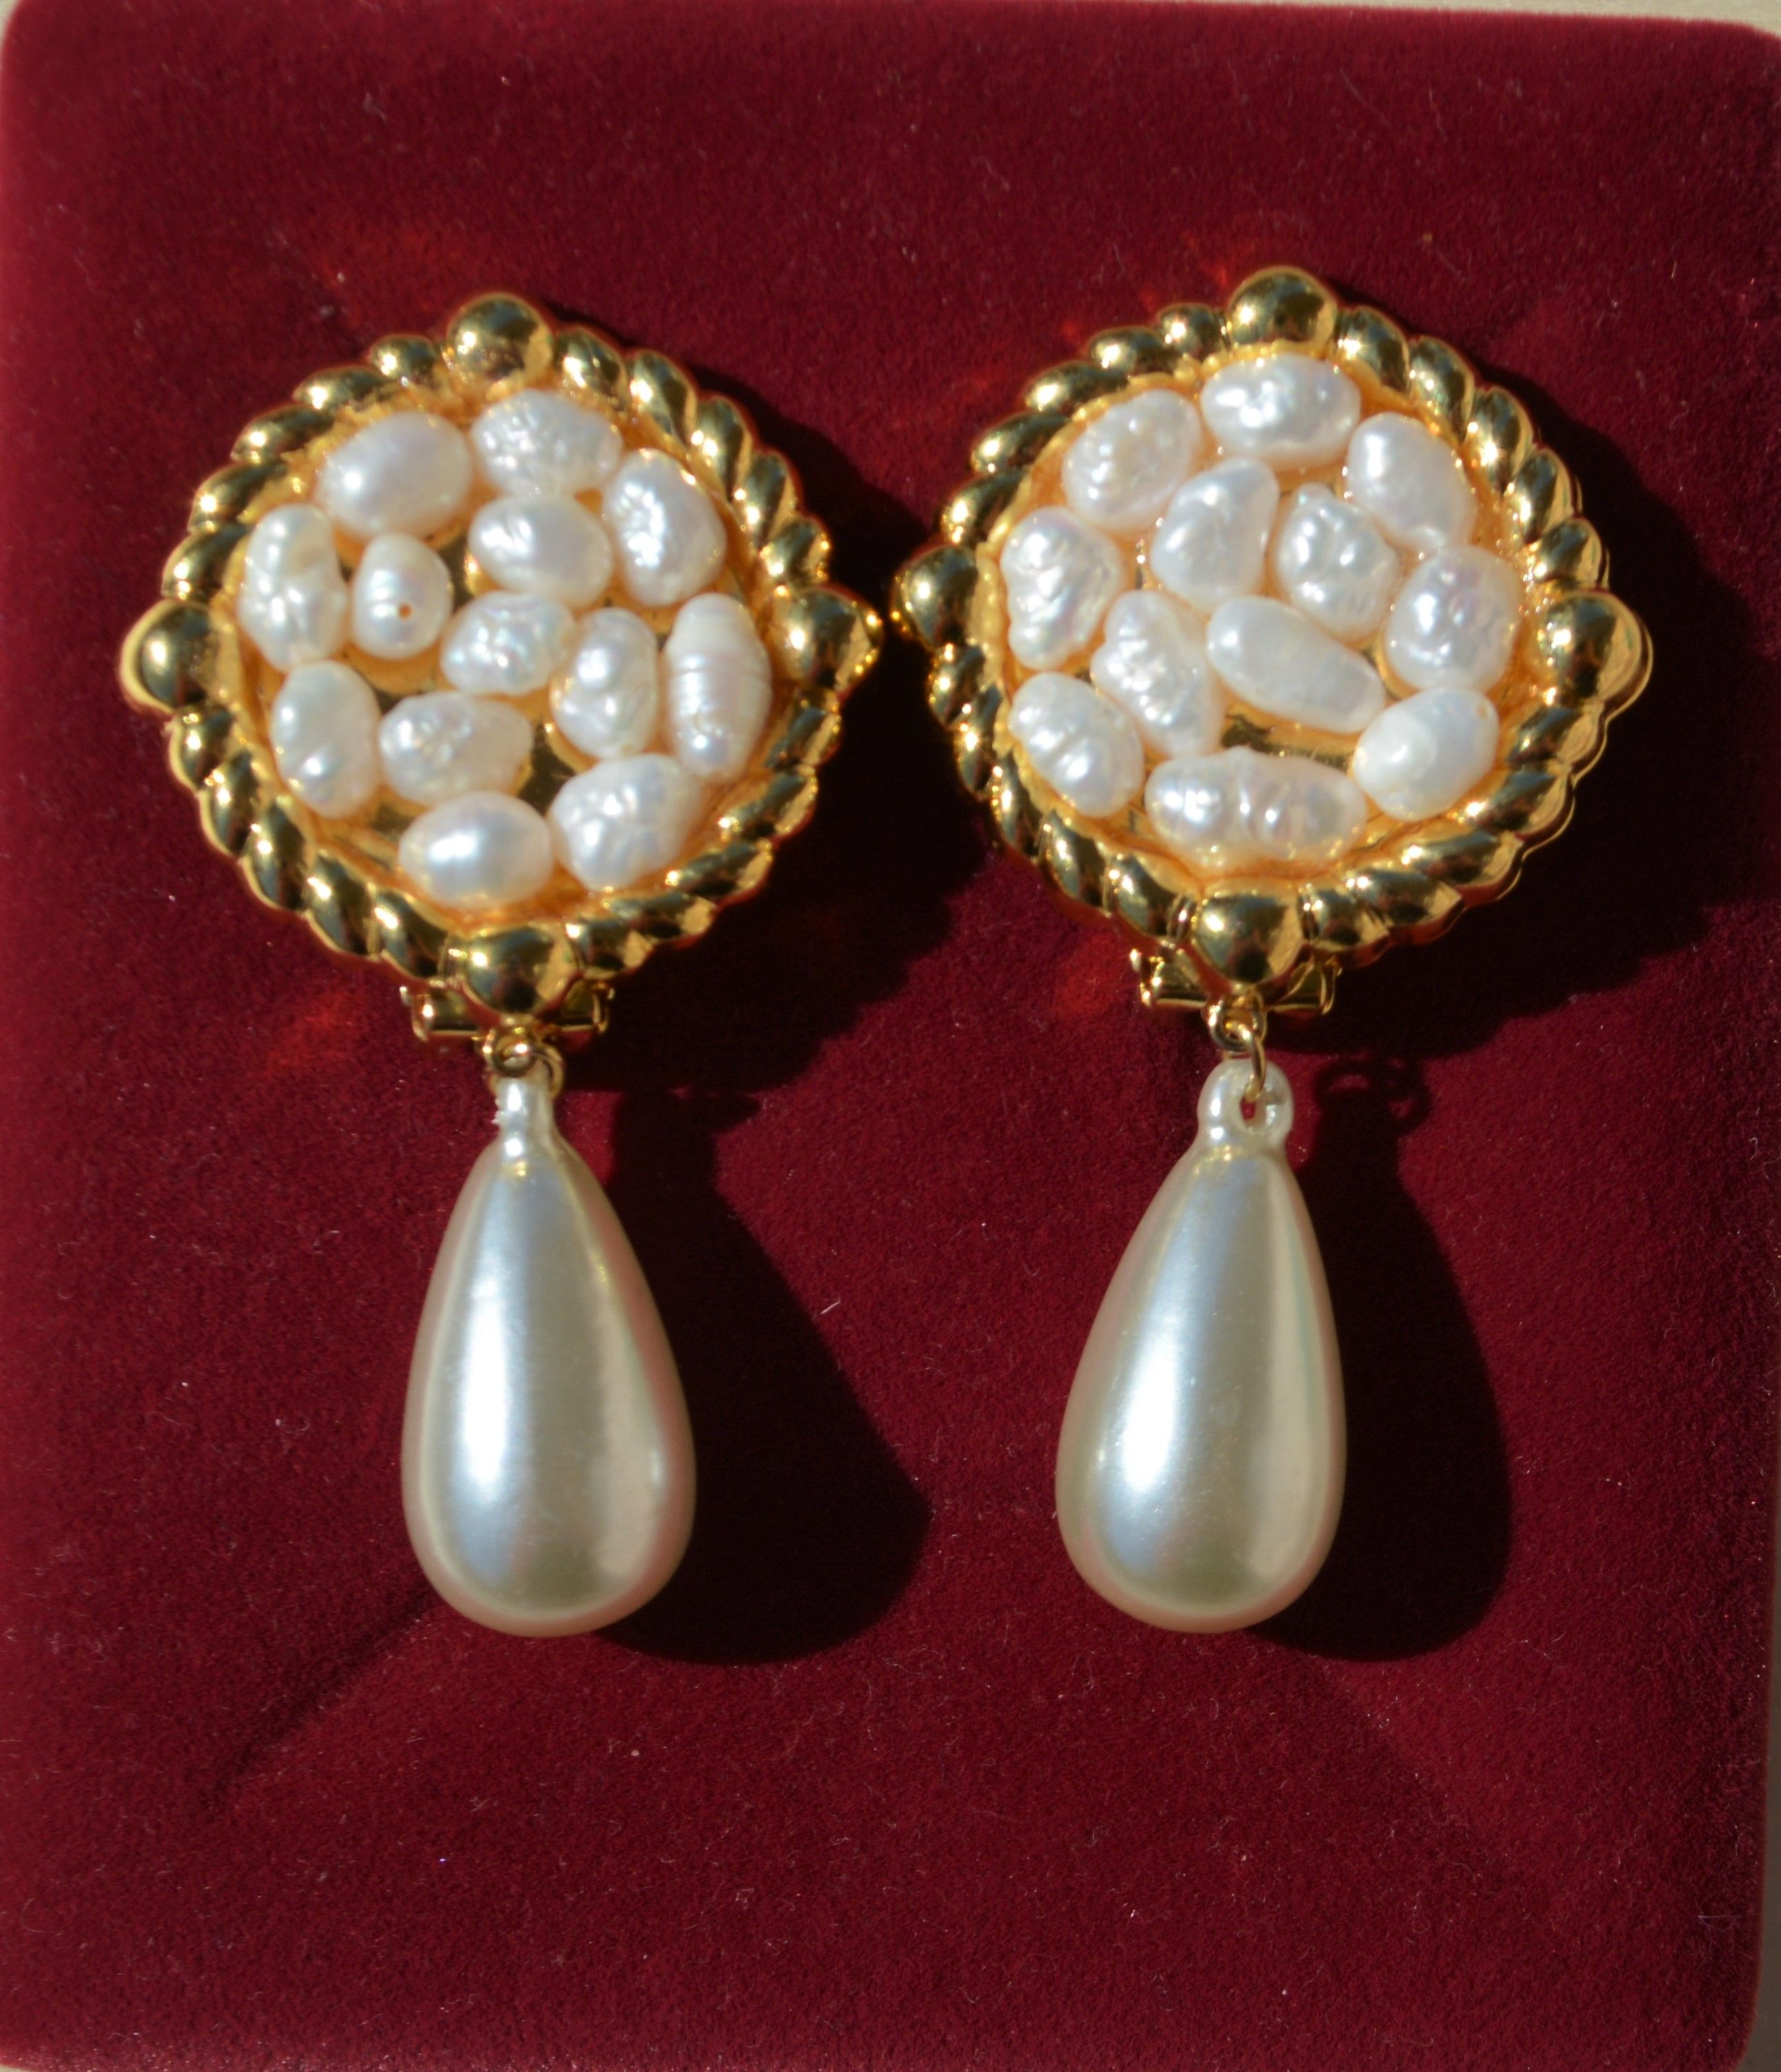 pearl jewelry earrings nordstrom c under real s women